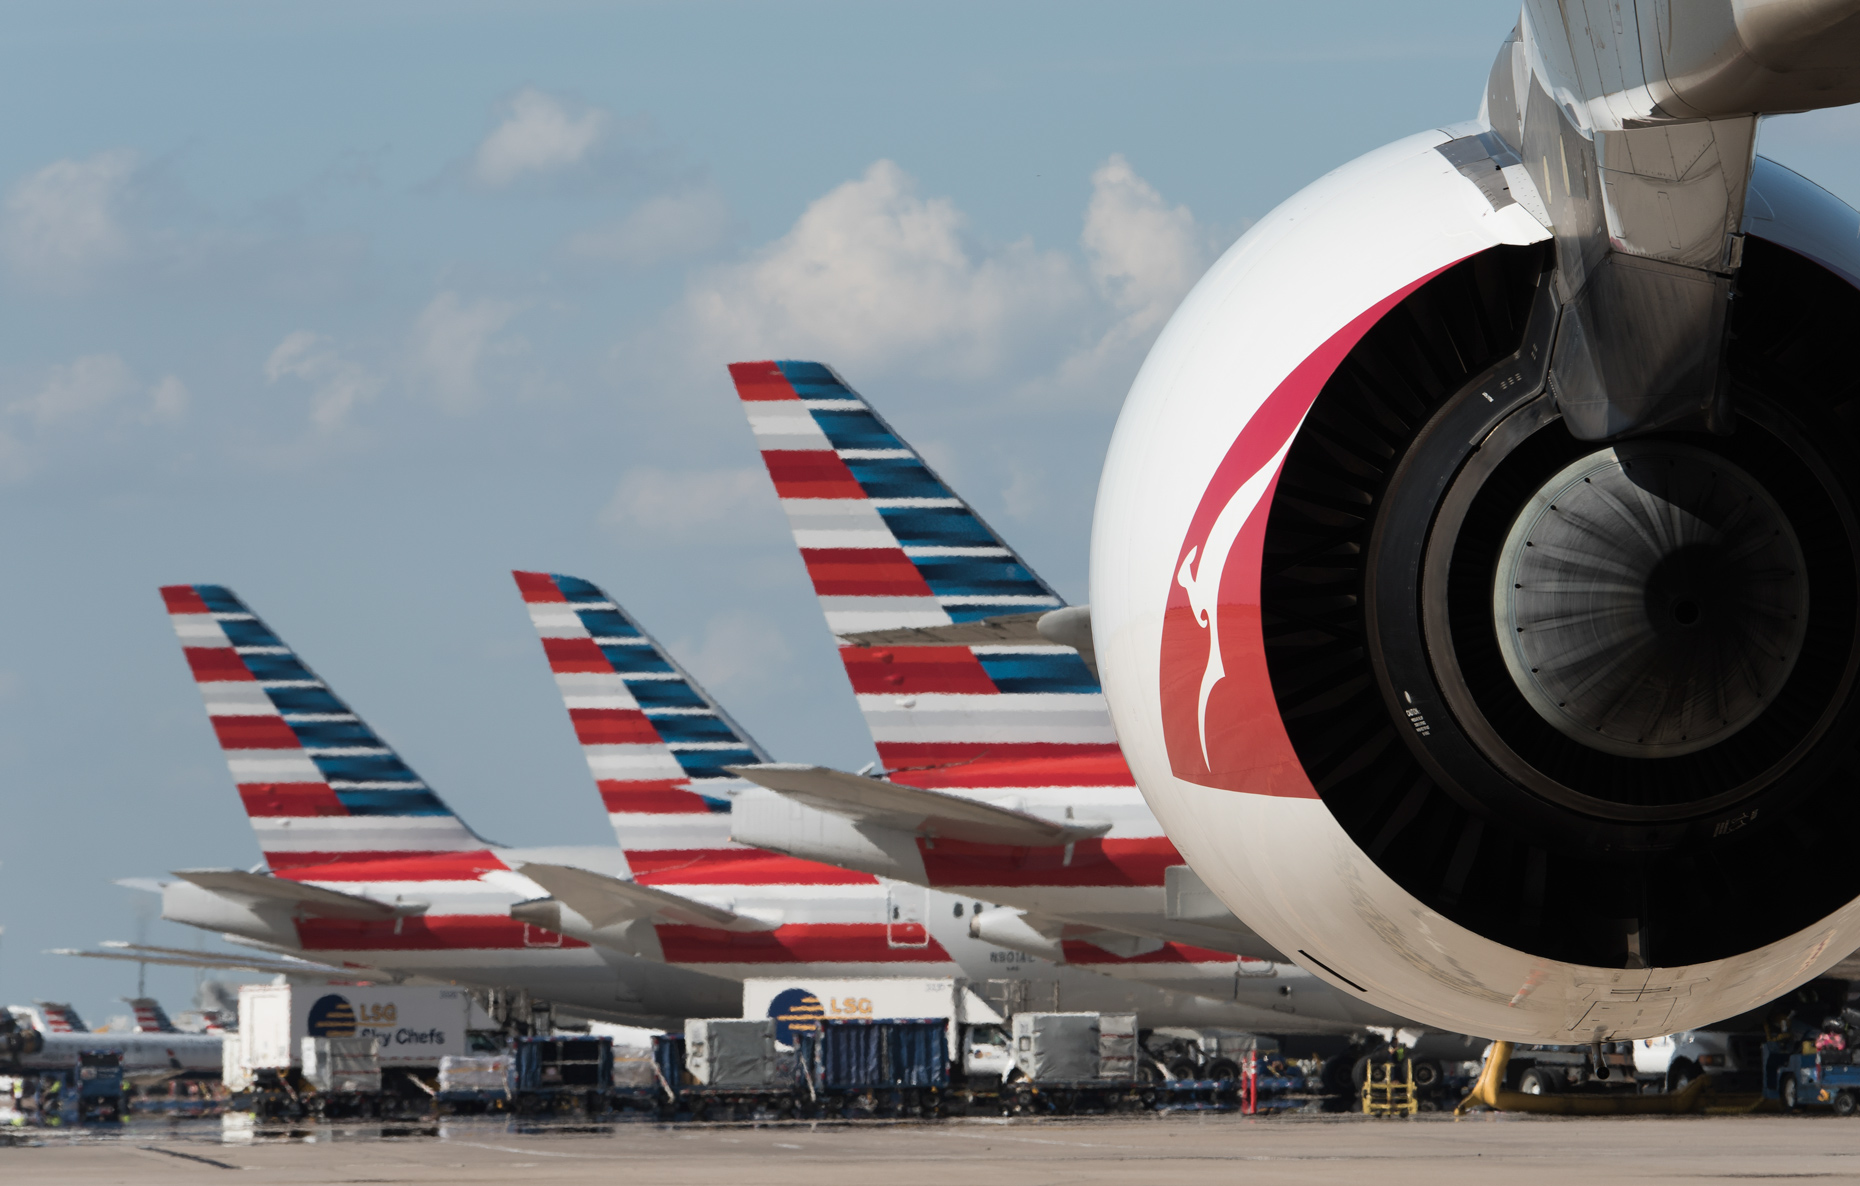 American Airlines jets at DFW Airport by commercial photographer in Dallas Kevin Brown